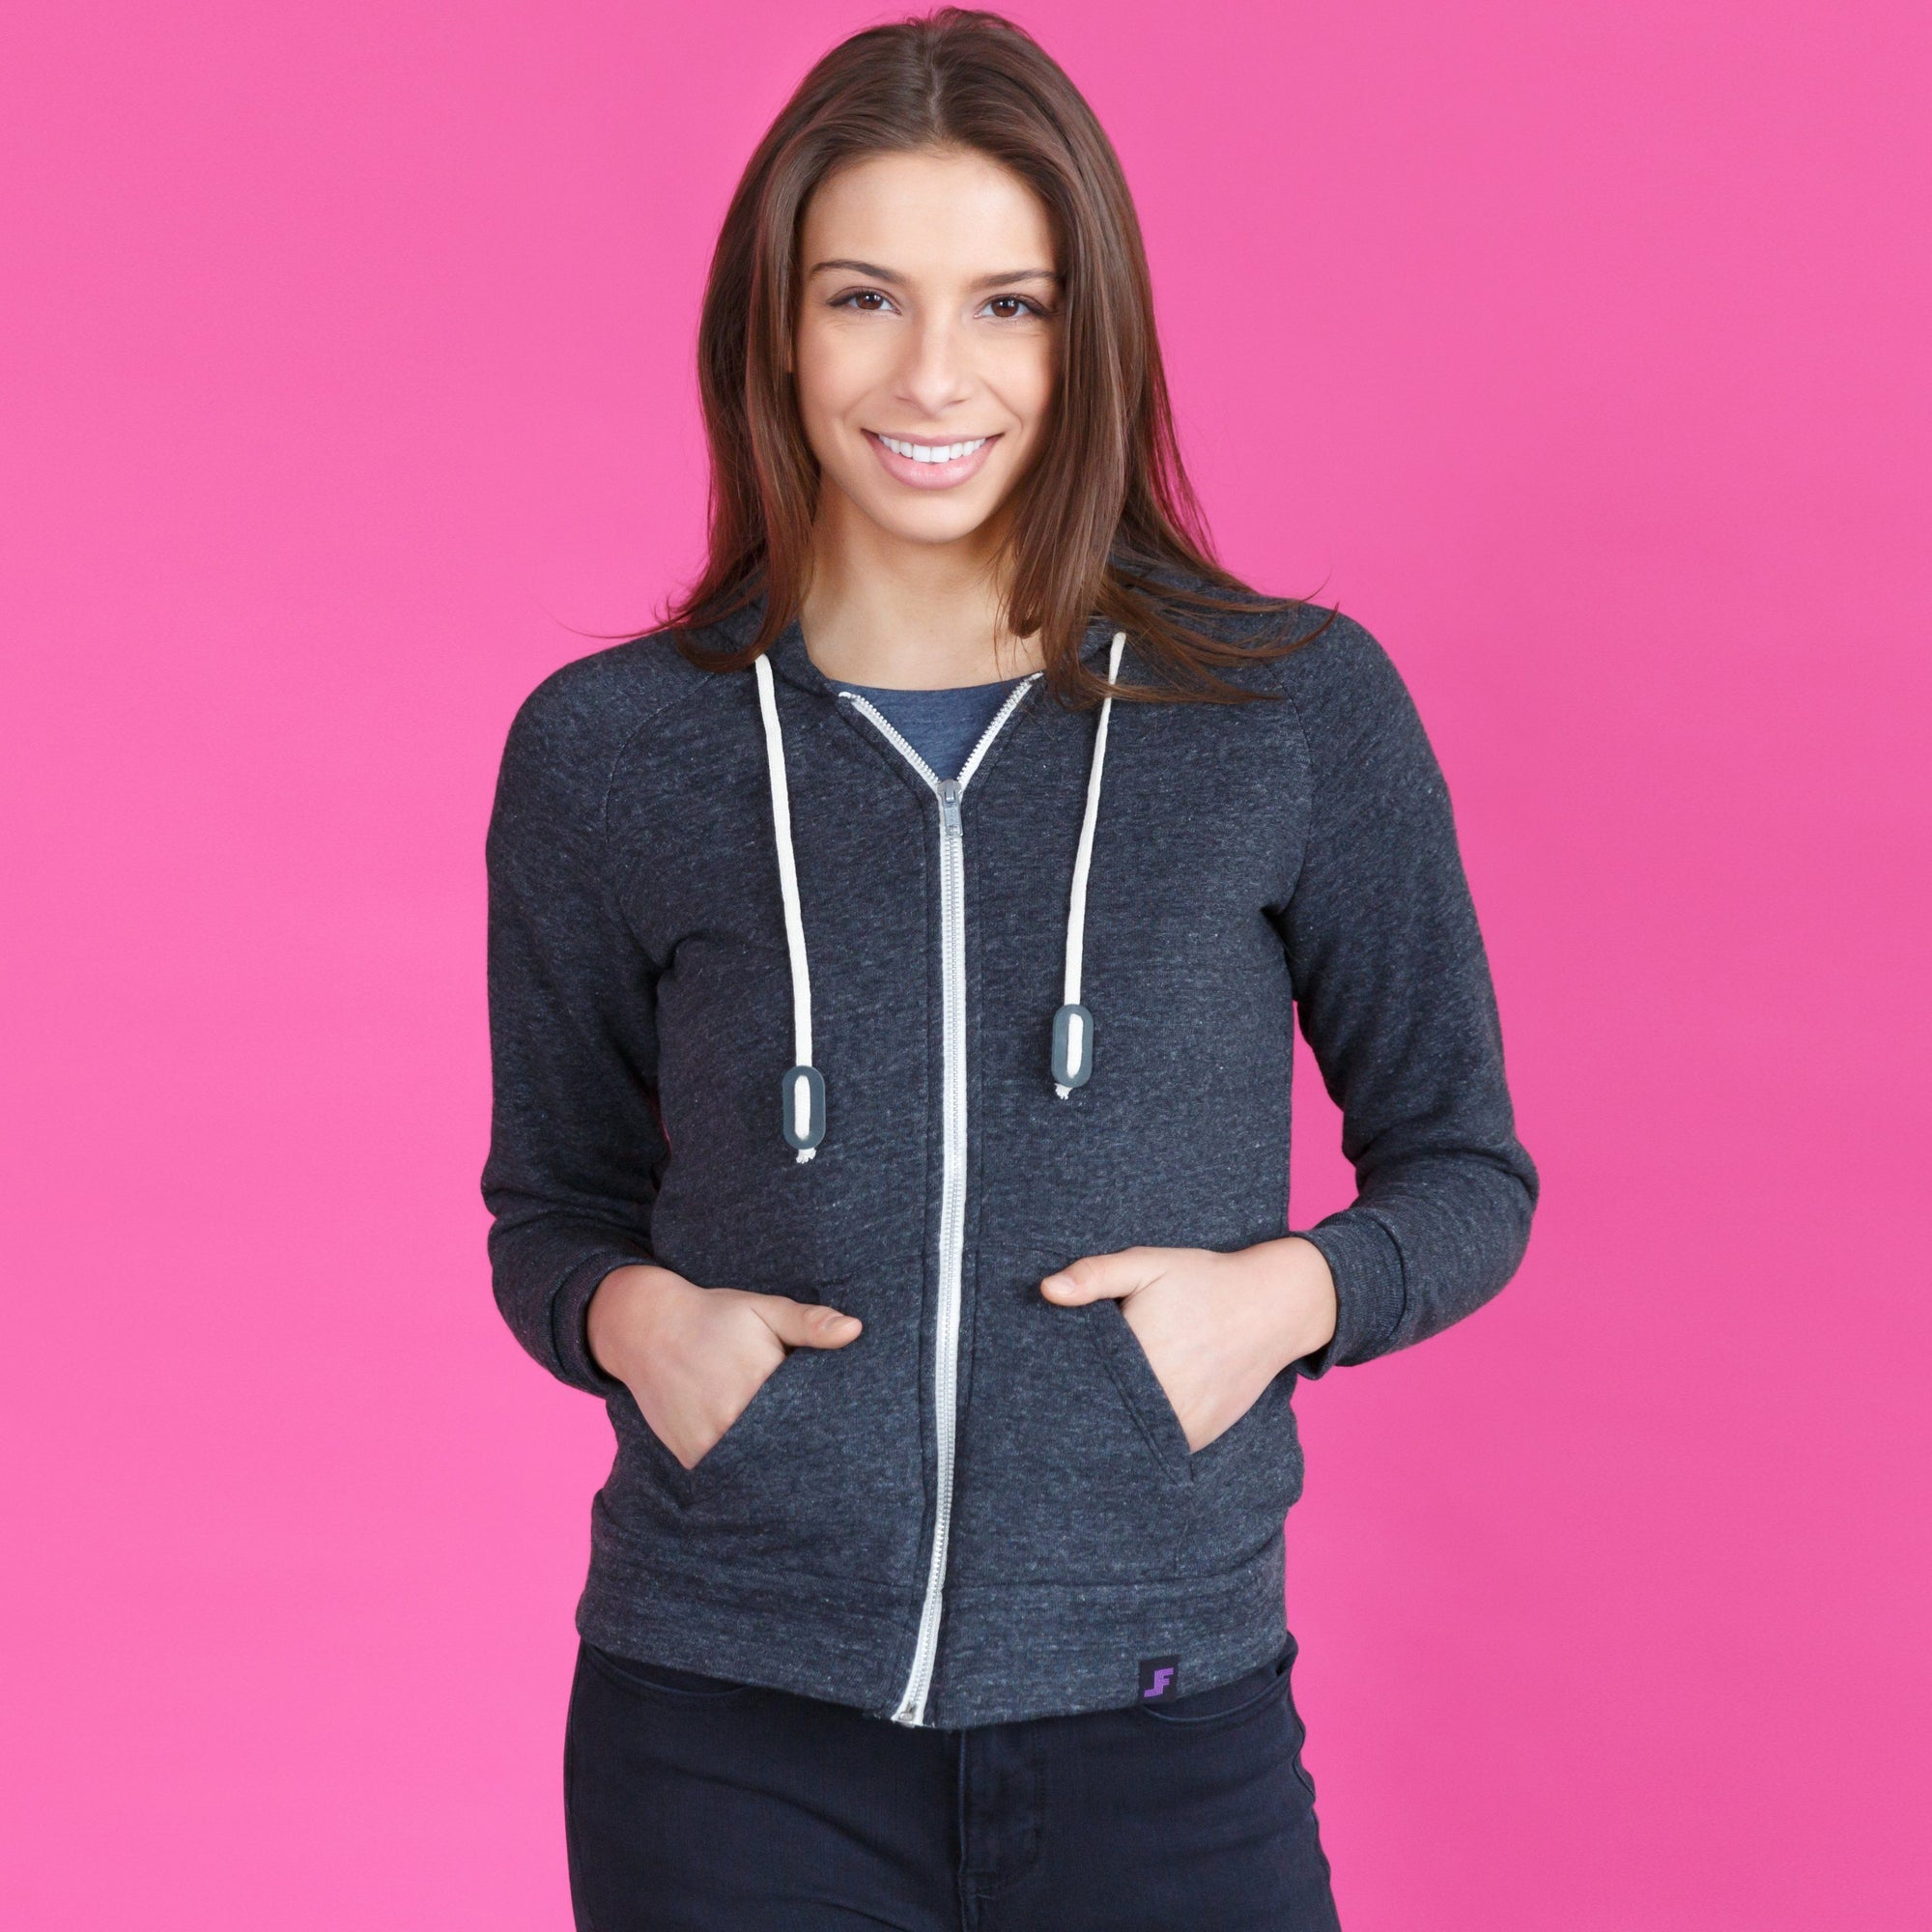 Women's Hoodies - The Sidekick // Eco Fleece Zip Zup Hoodie